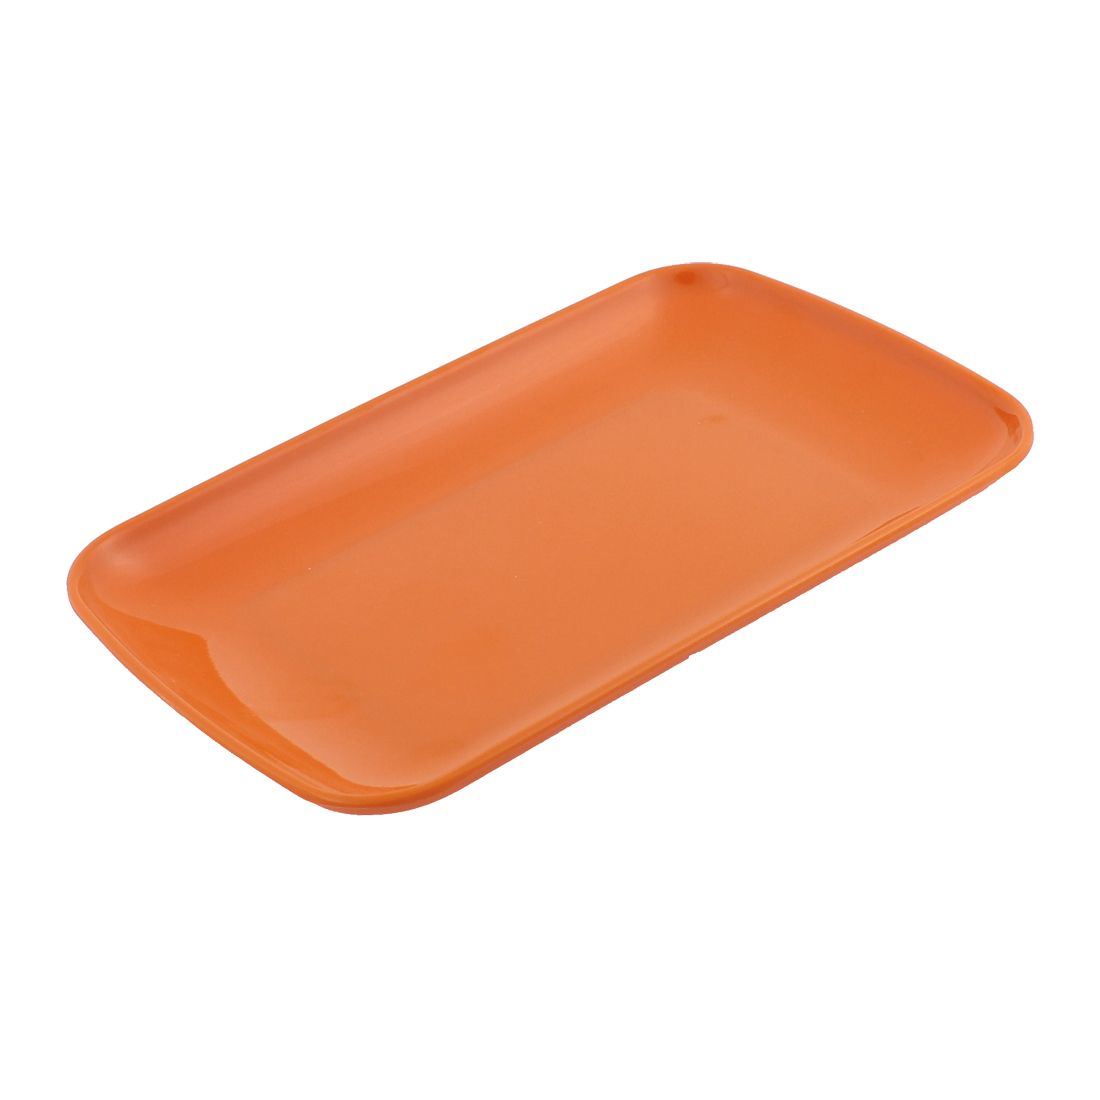 Rectangle Shape Dinner Dessert Appetizer Vermicelli Plate Dish Orange